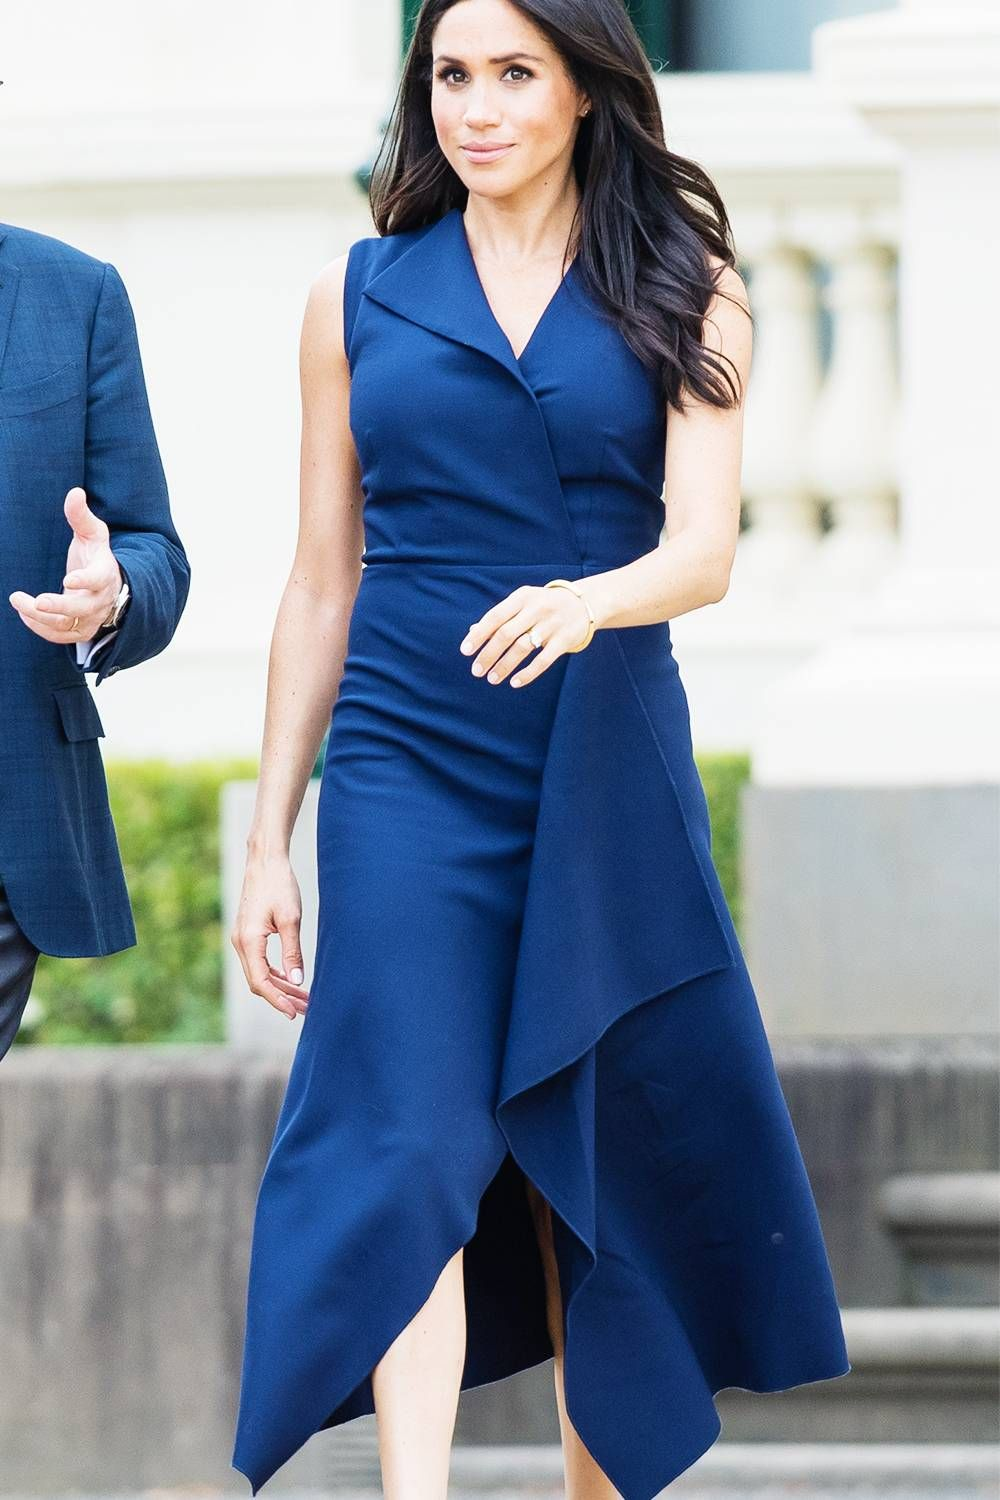 Meghan Markle wore outfits worth £26,400 for final royal